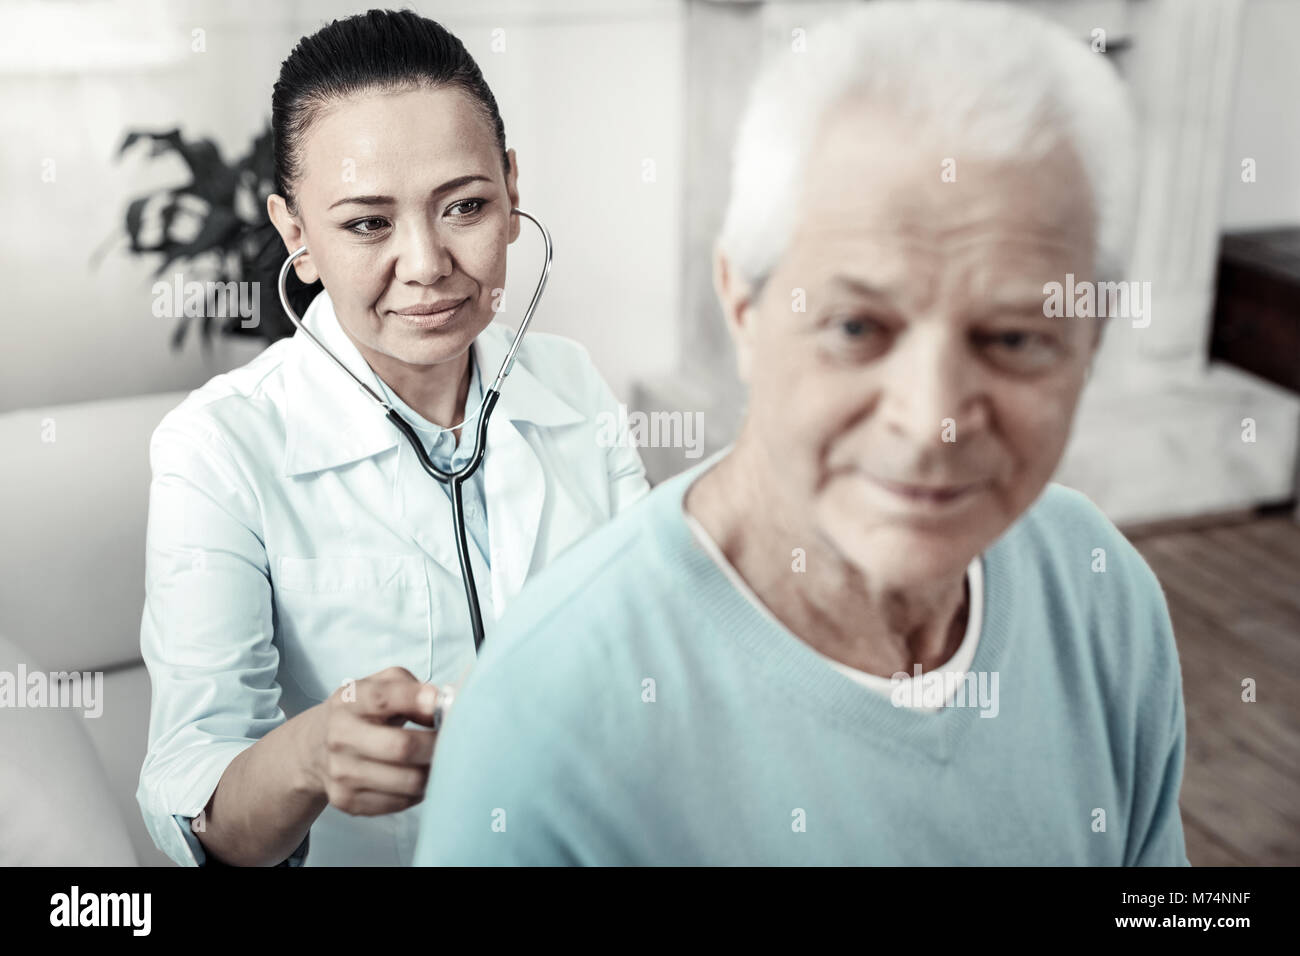 Kind cute nurse examining the patient and smiling. - Stock Image